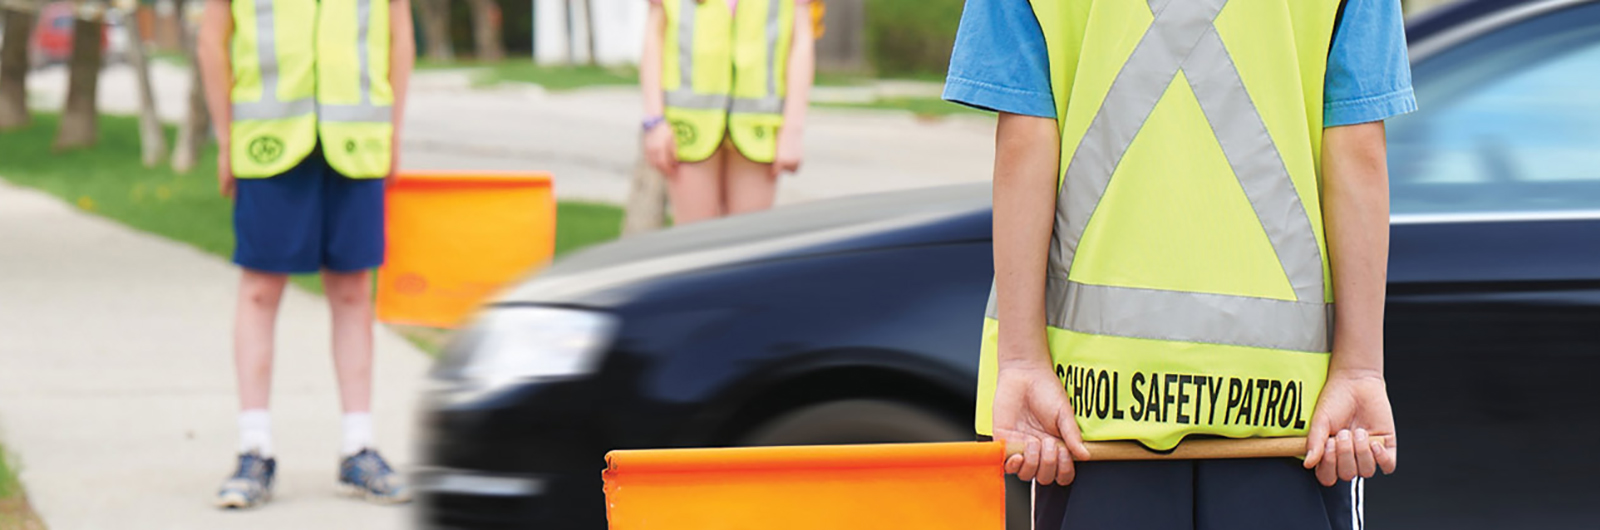 A school safety patrol wearing a yellow vest and holding an orange flag waiting for a car to cross the intersection.